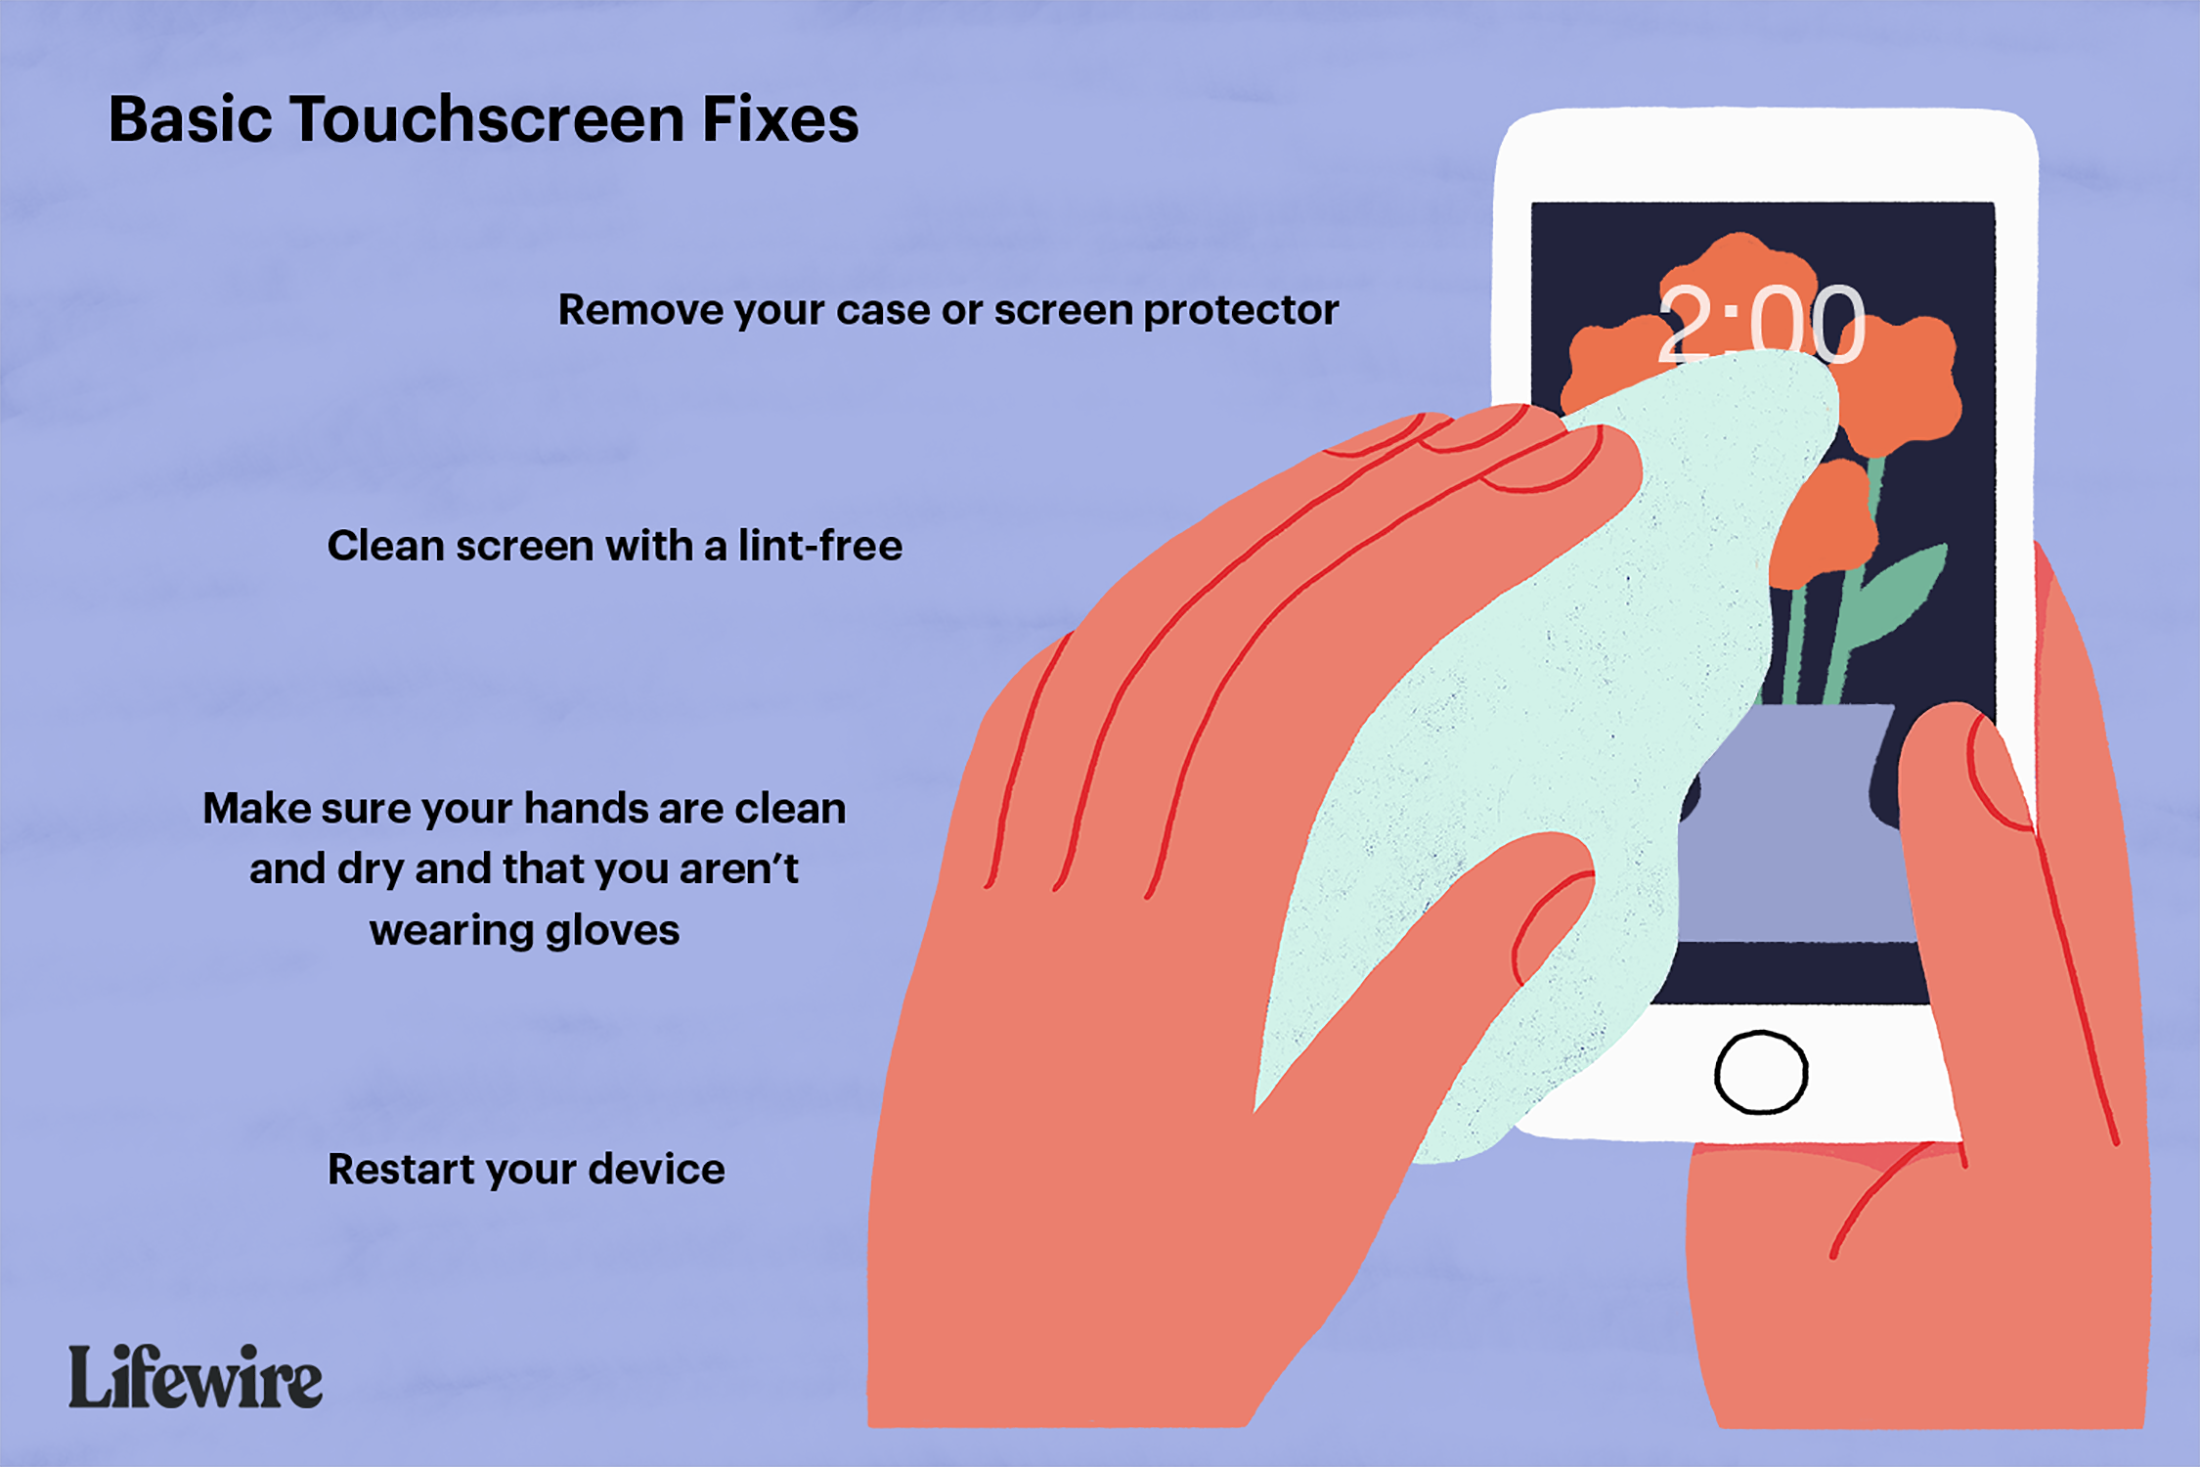 An illustration of someone cleaning an iPhone screen with the basic touchscreen fixes listed.